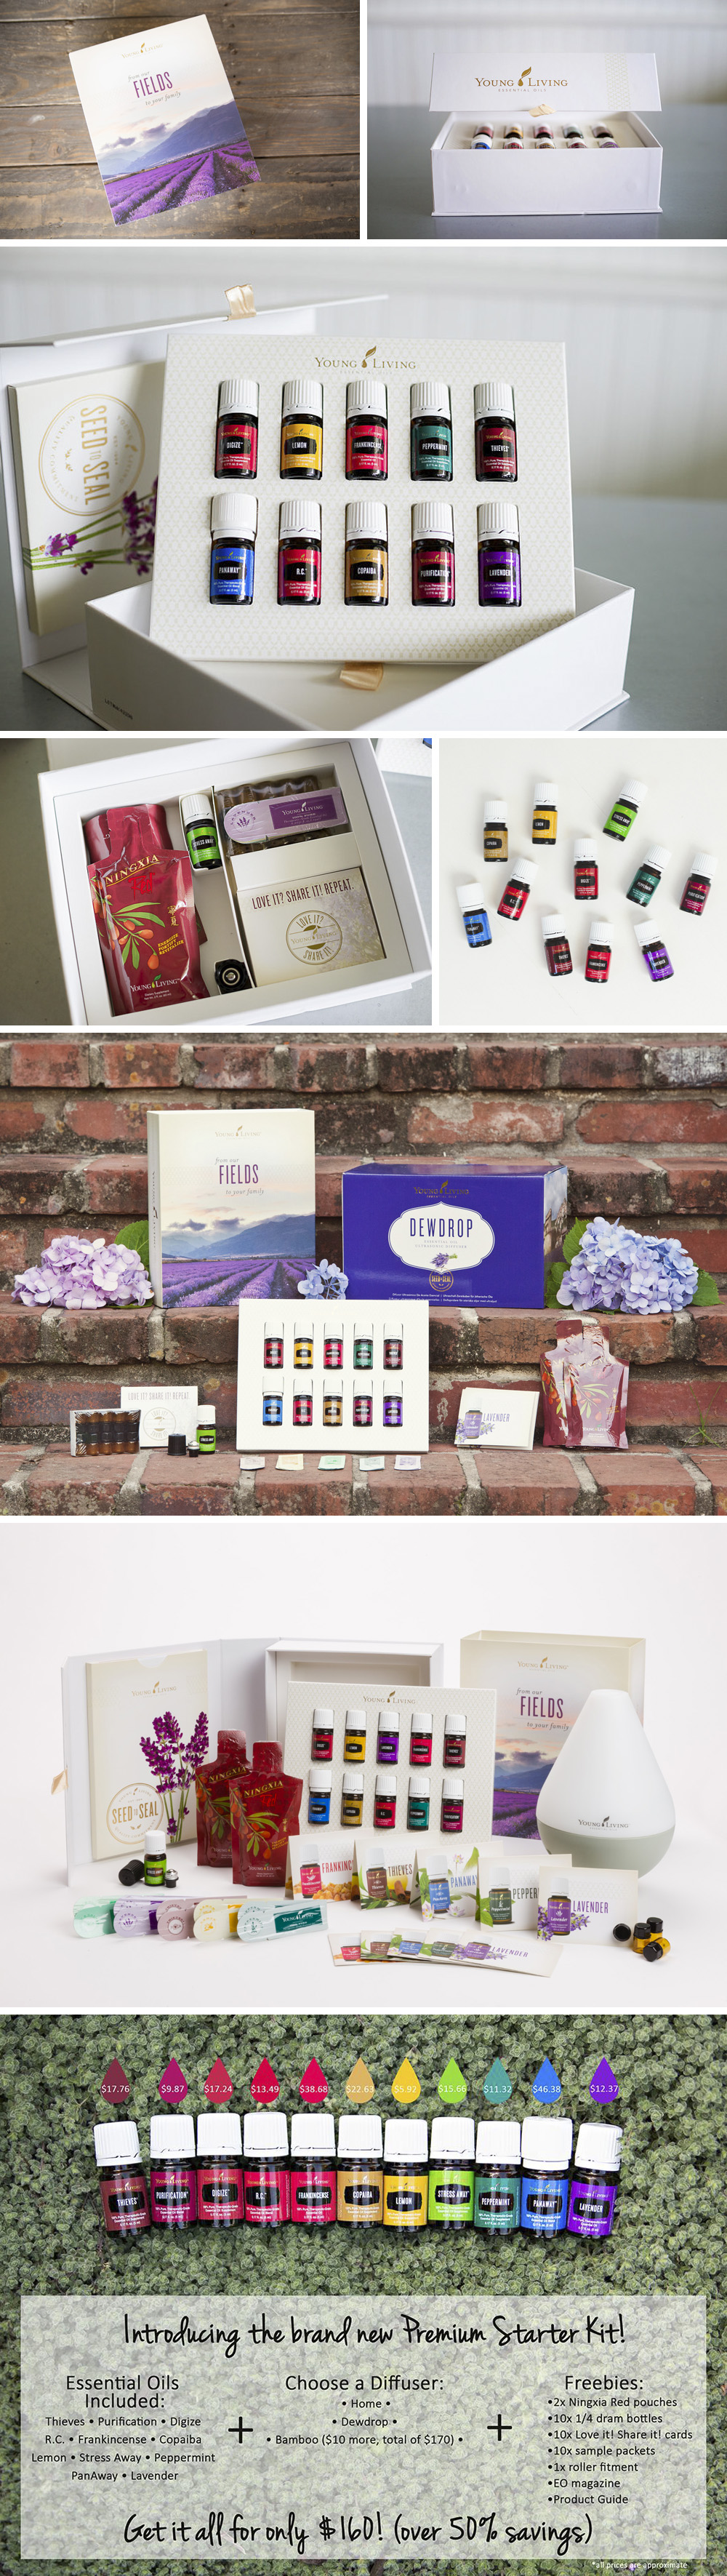 new kit blog post THE NEW YOUNG LIVING ESSENTIAL OILS STARTER KIT